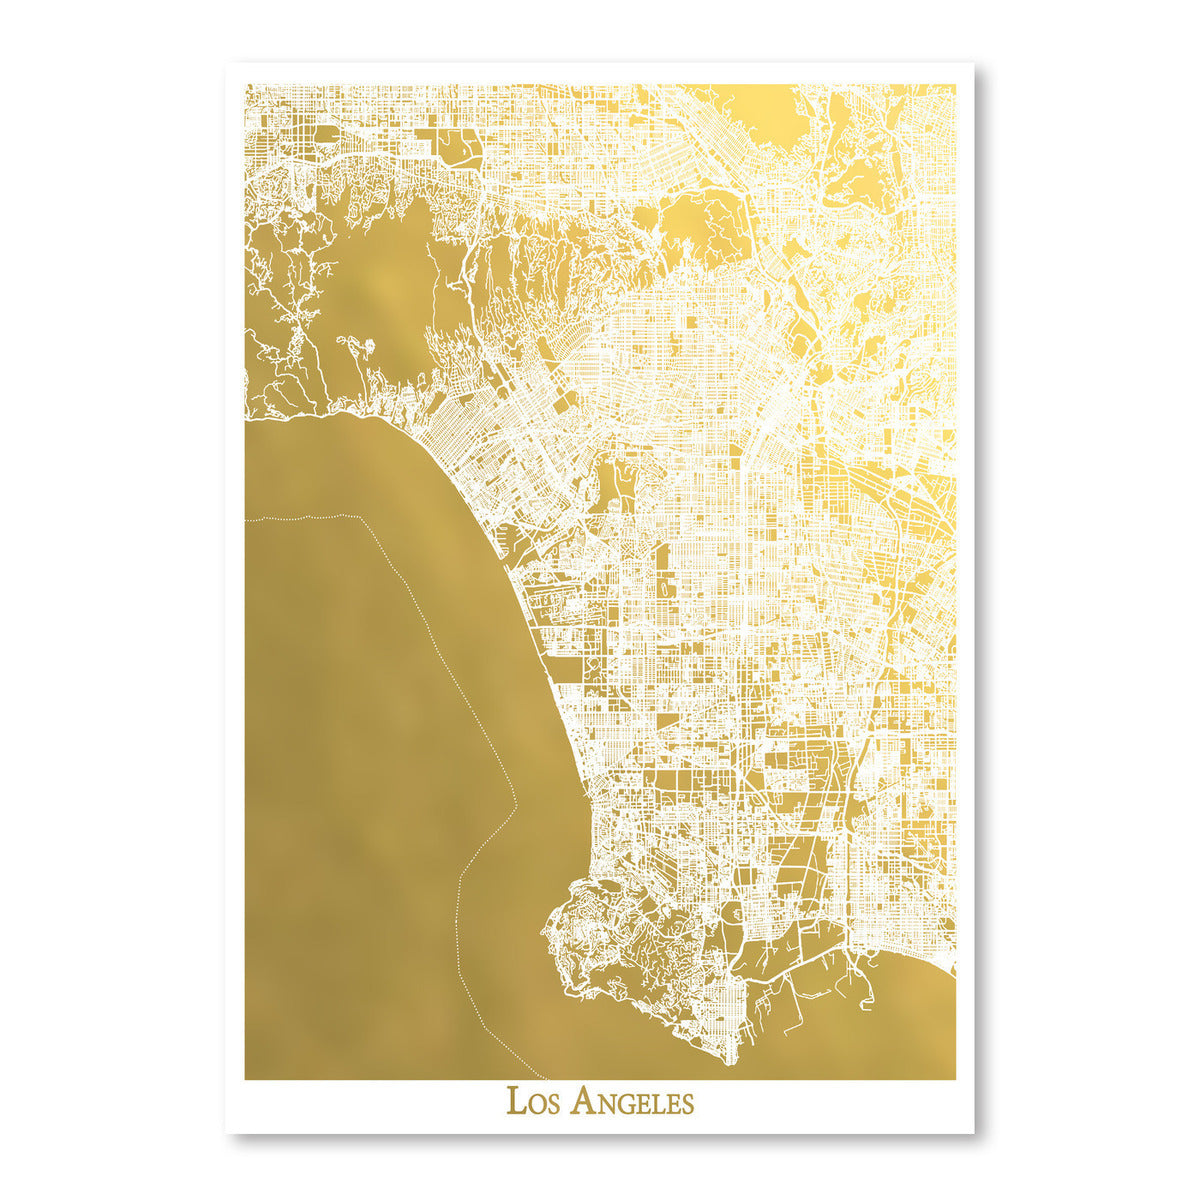 Los Angeles by The Gold Foil Map Company Art Print - Art Print - Americanflat